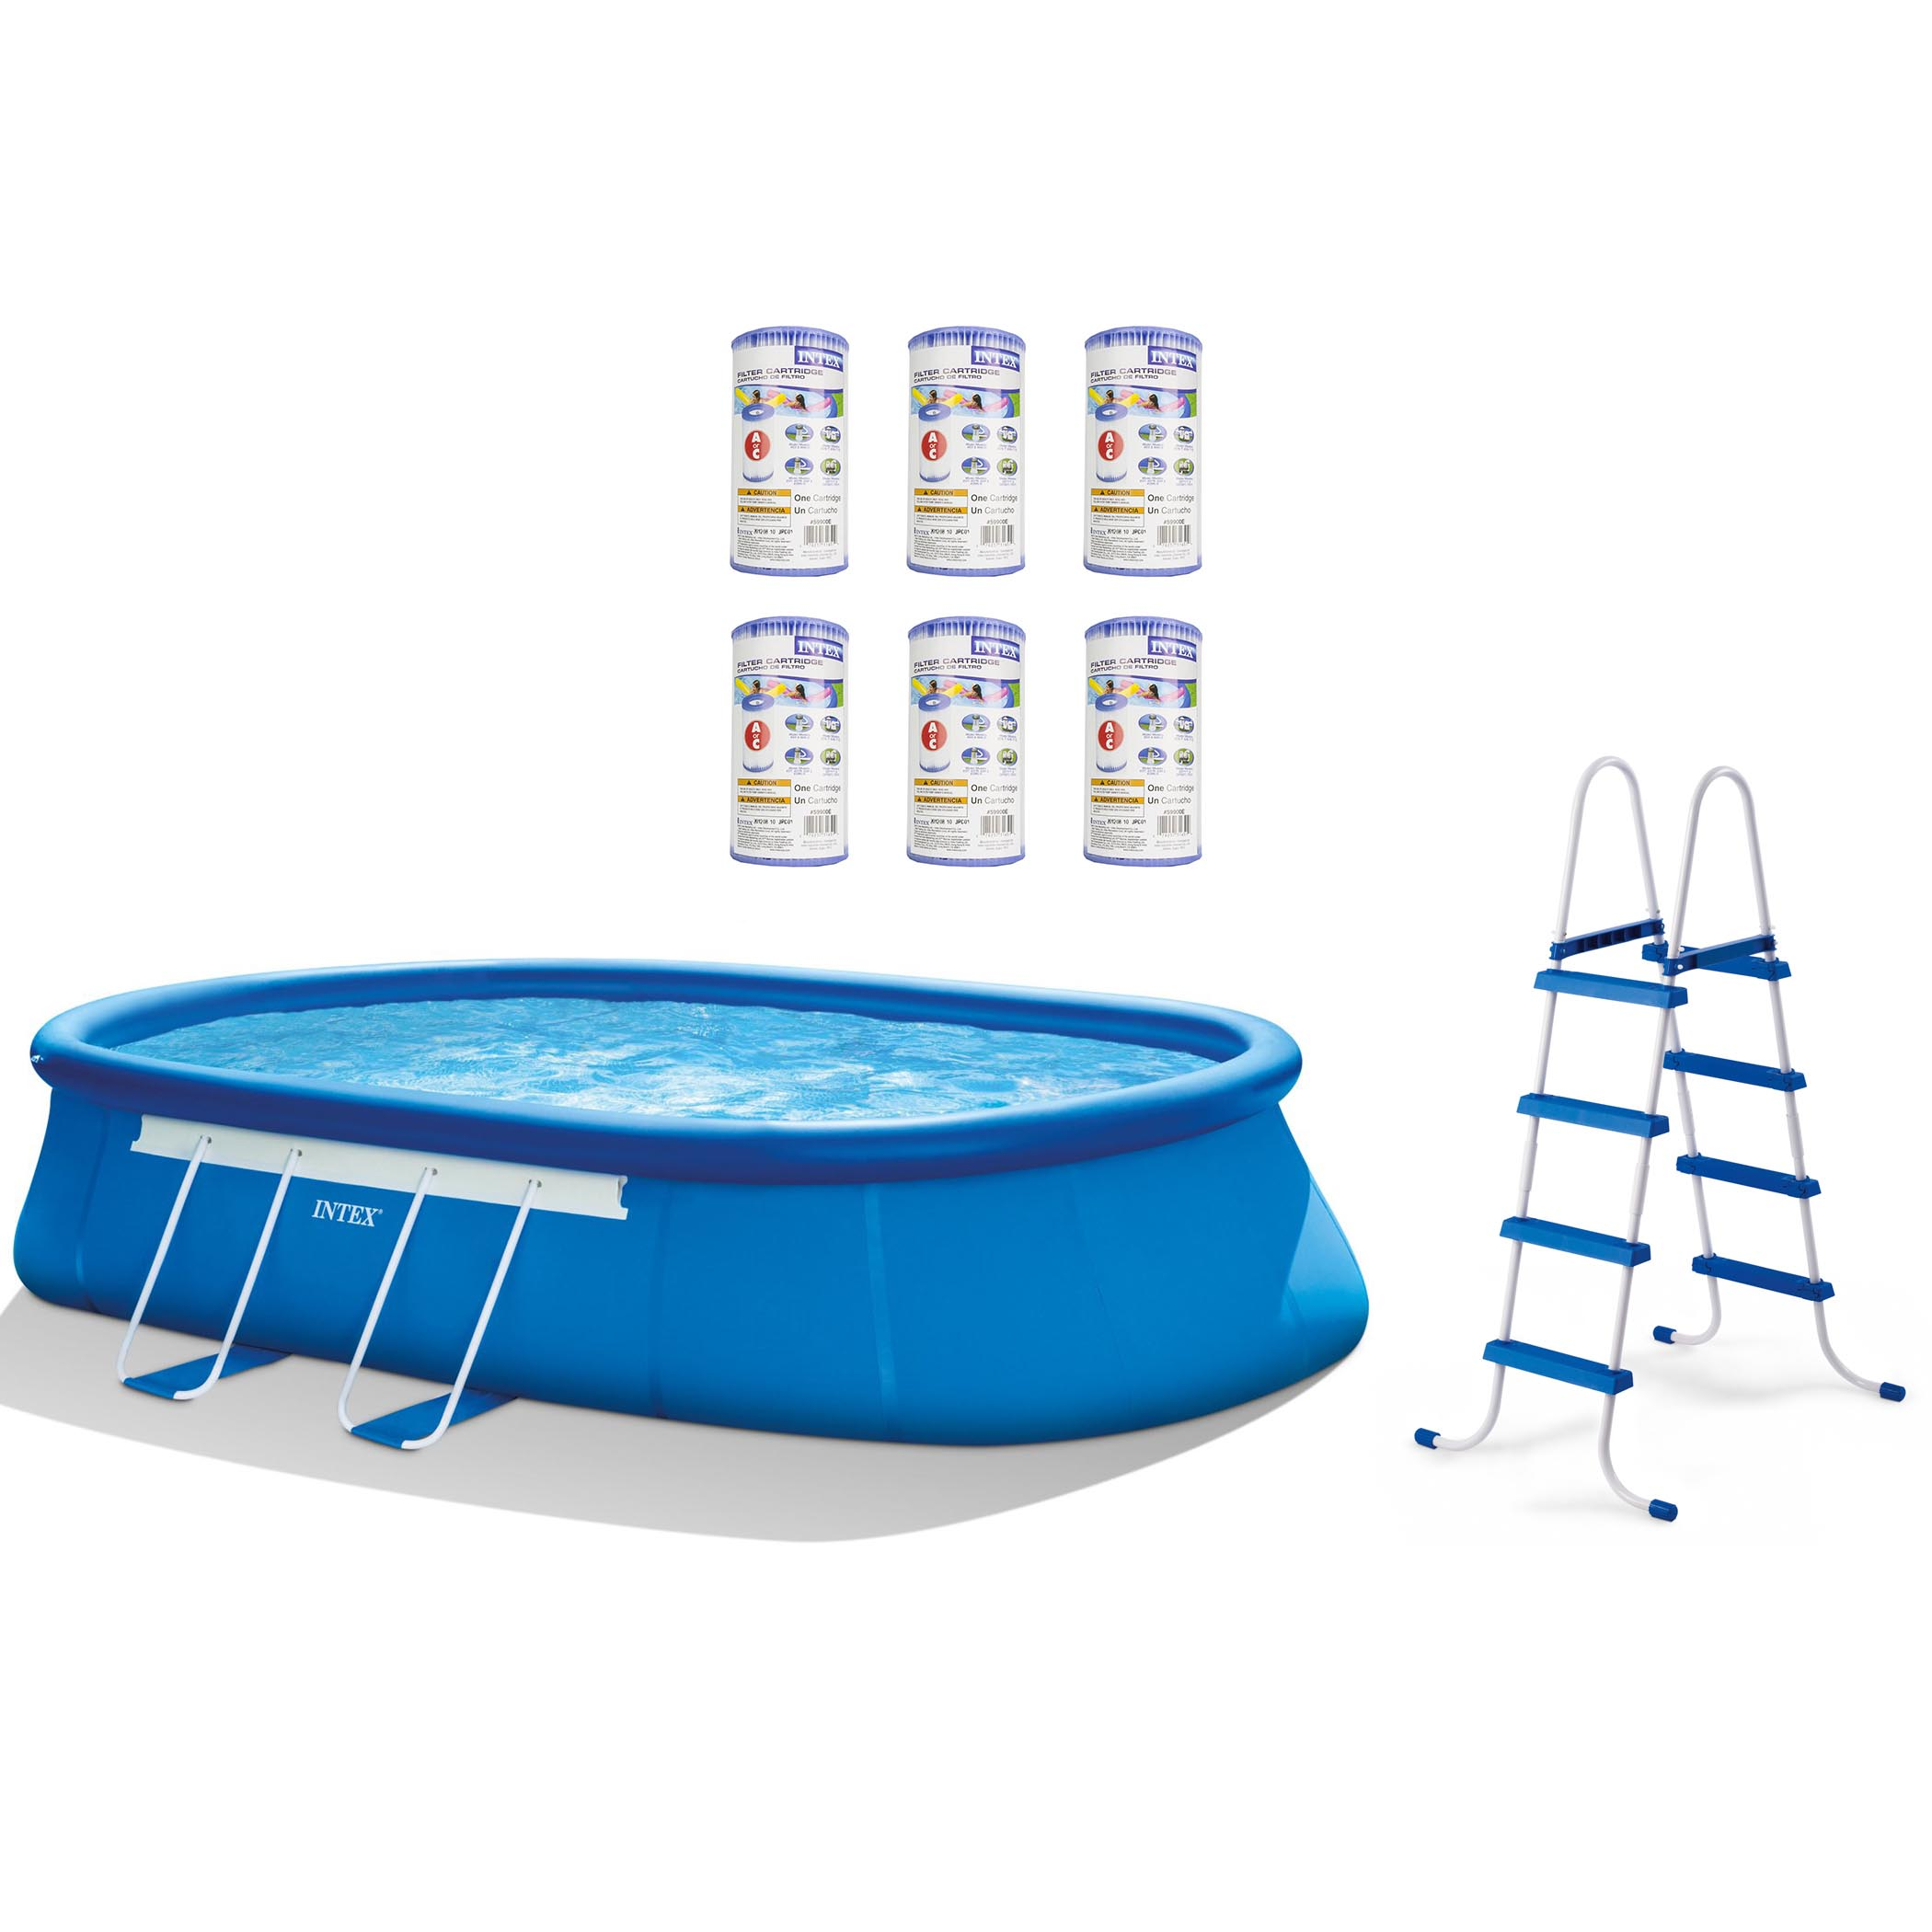 "Intex 20' x 12' x 48"" Oval Frame Above Ground Pool Set + Filter Cartridges (6) by Intex"